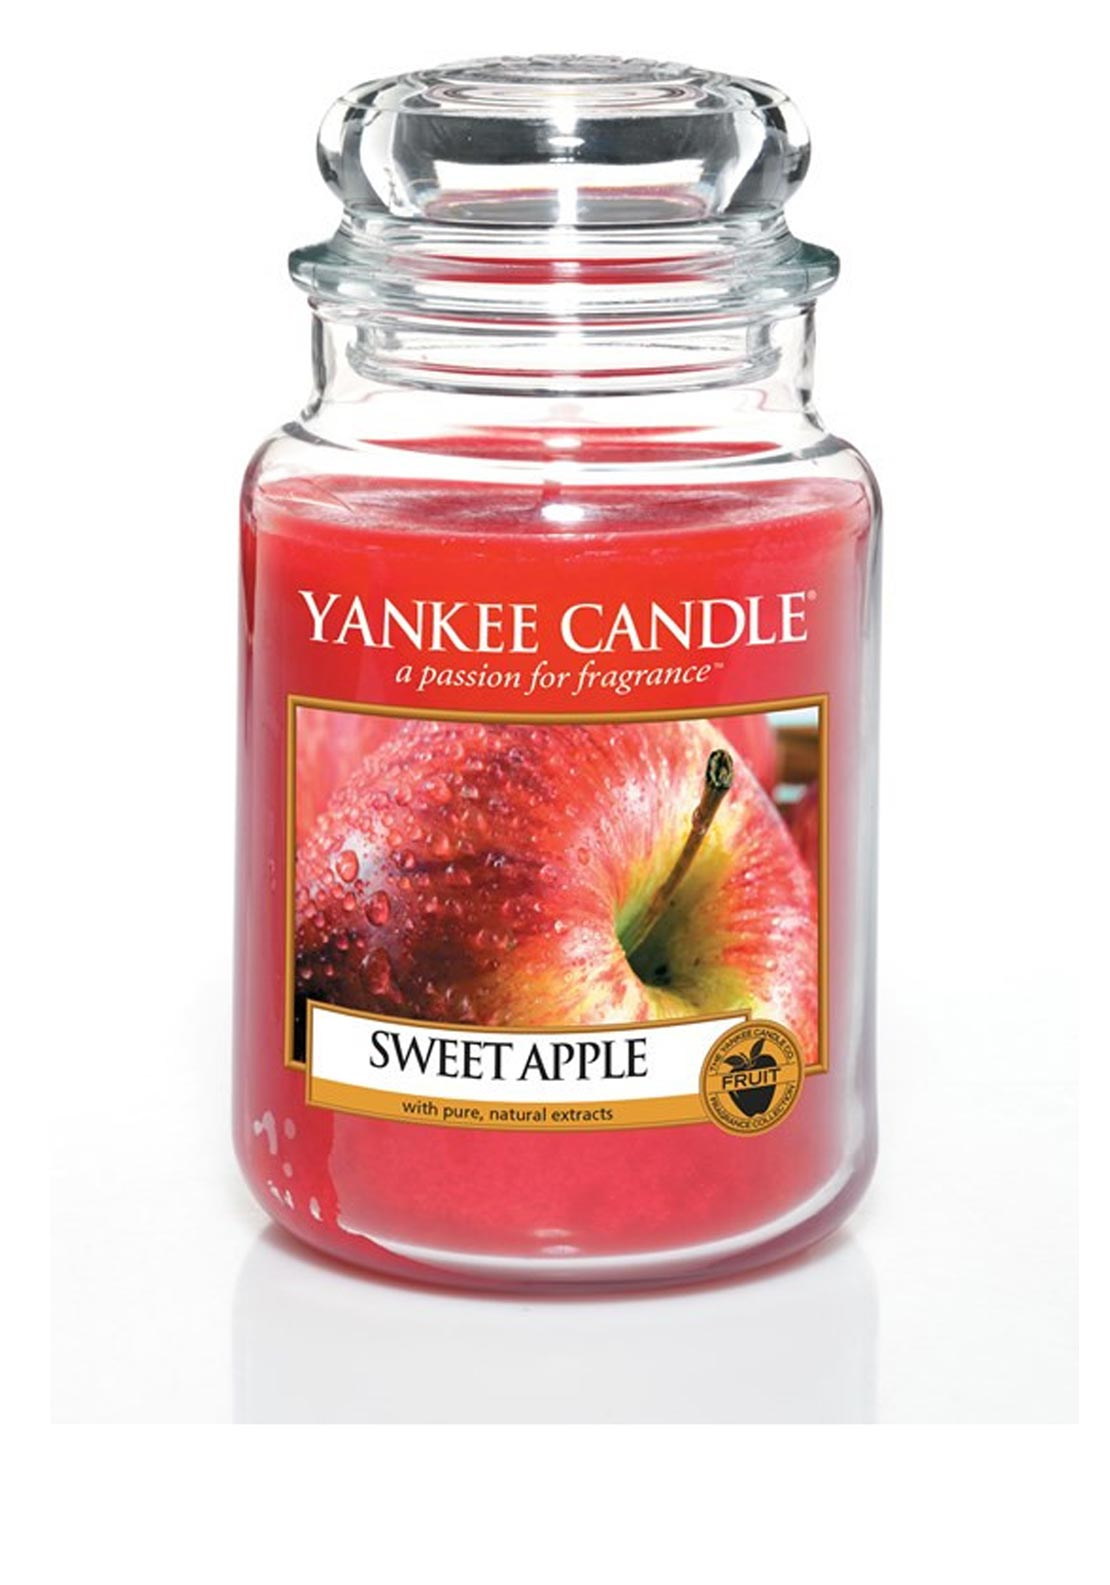 Yankee Candle Large Classic Jar, Sweet Apple